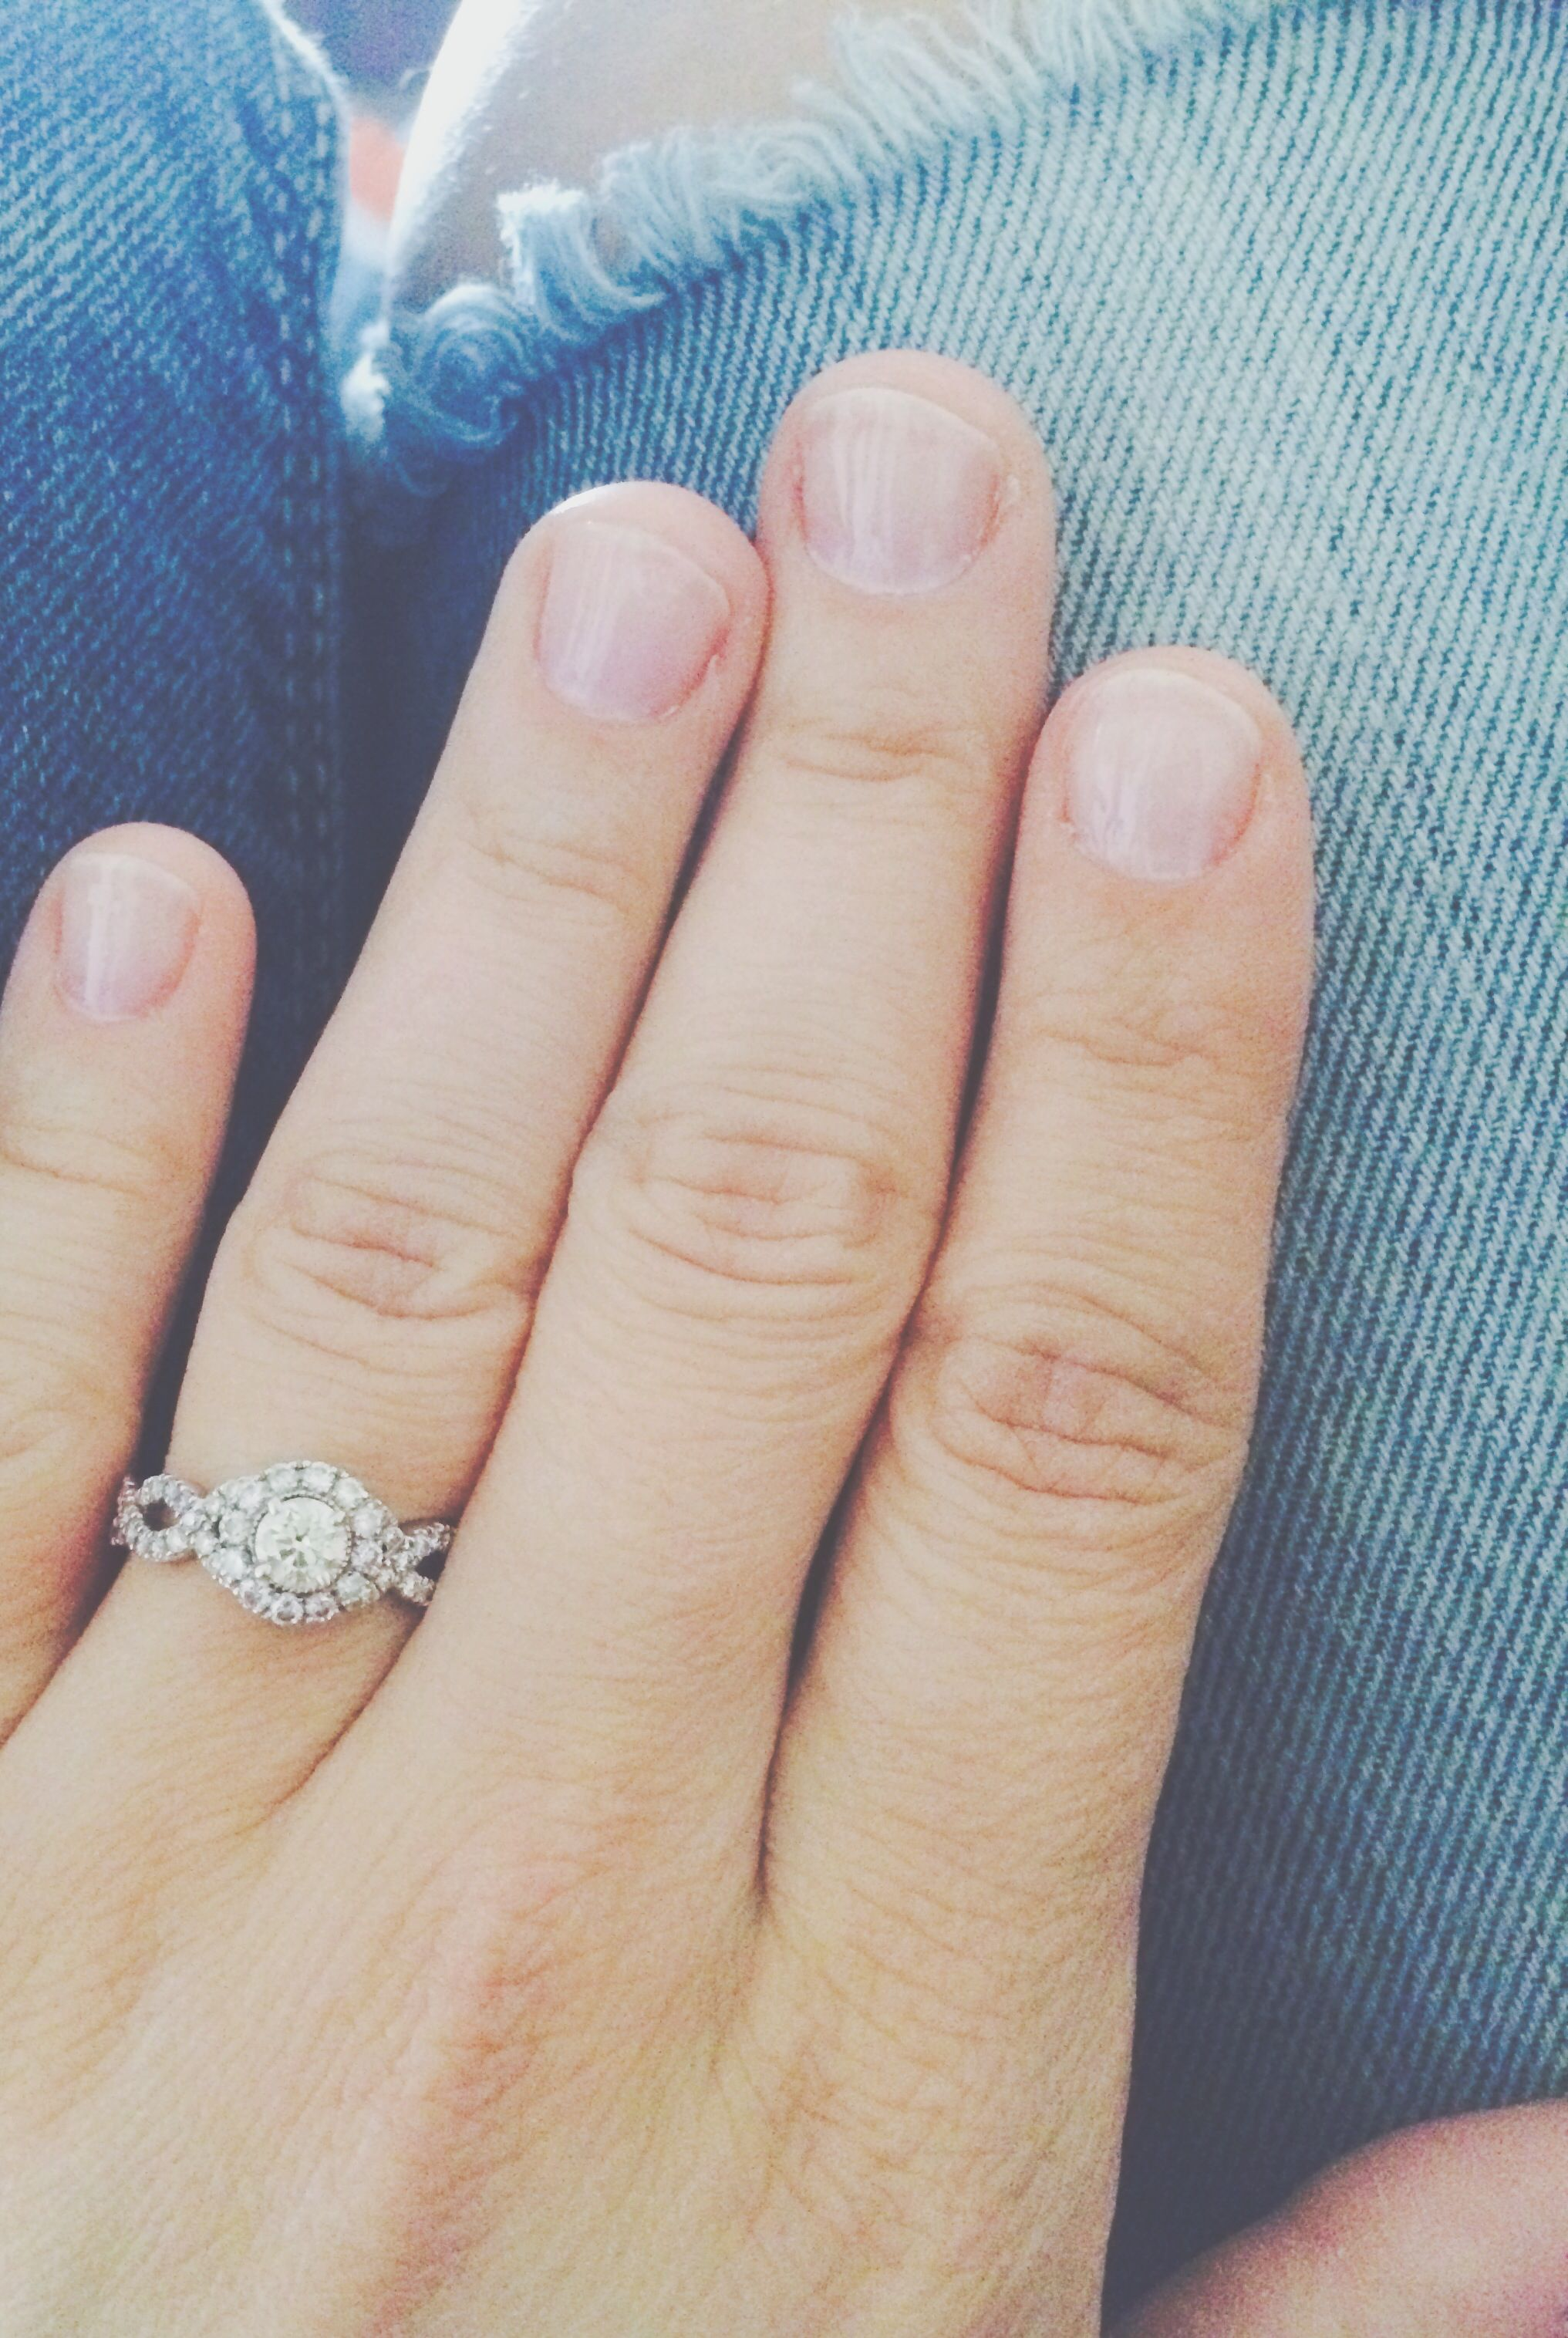 Pin By Kaitlin Rice On My Engagement Ring Neil Lane Engagement Rings Engagement Rings My Engagement Ring